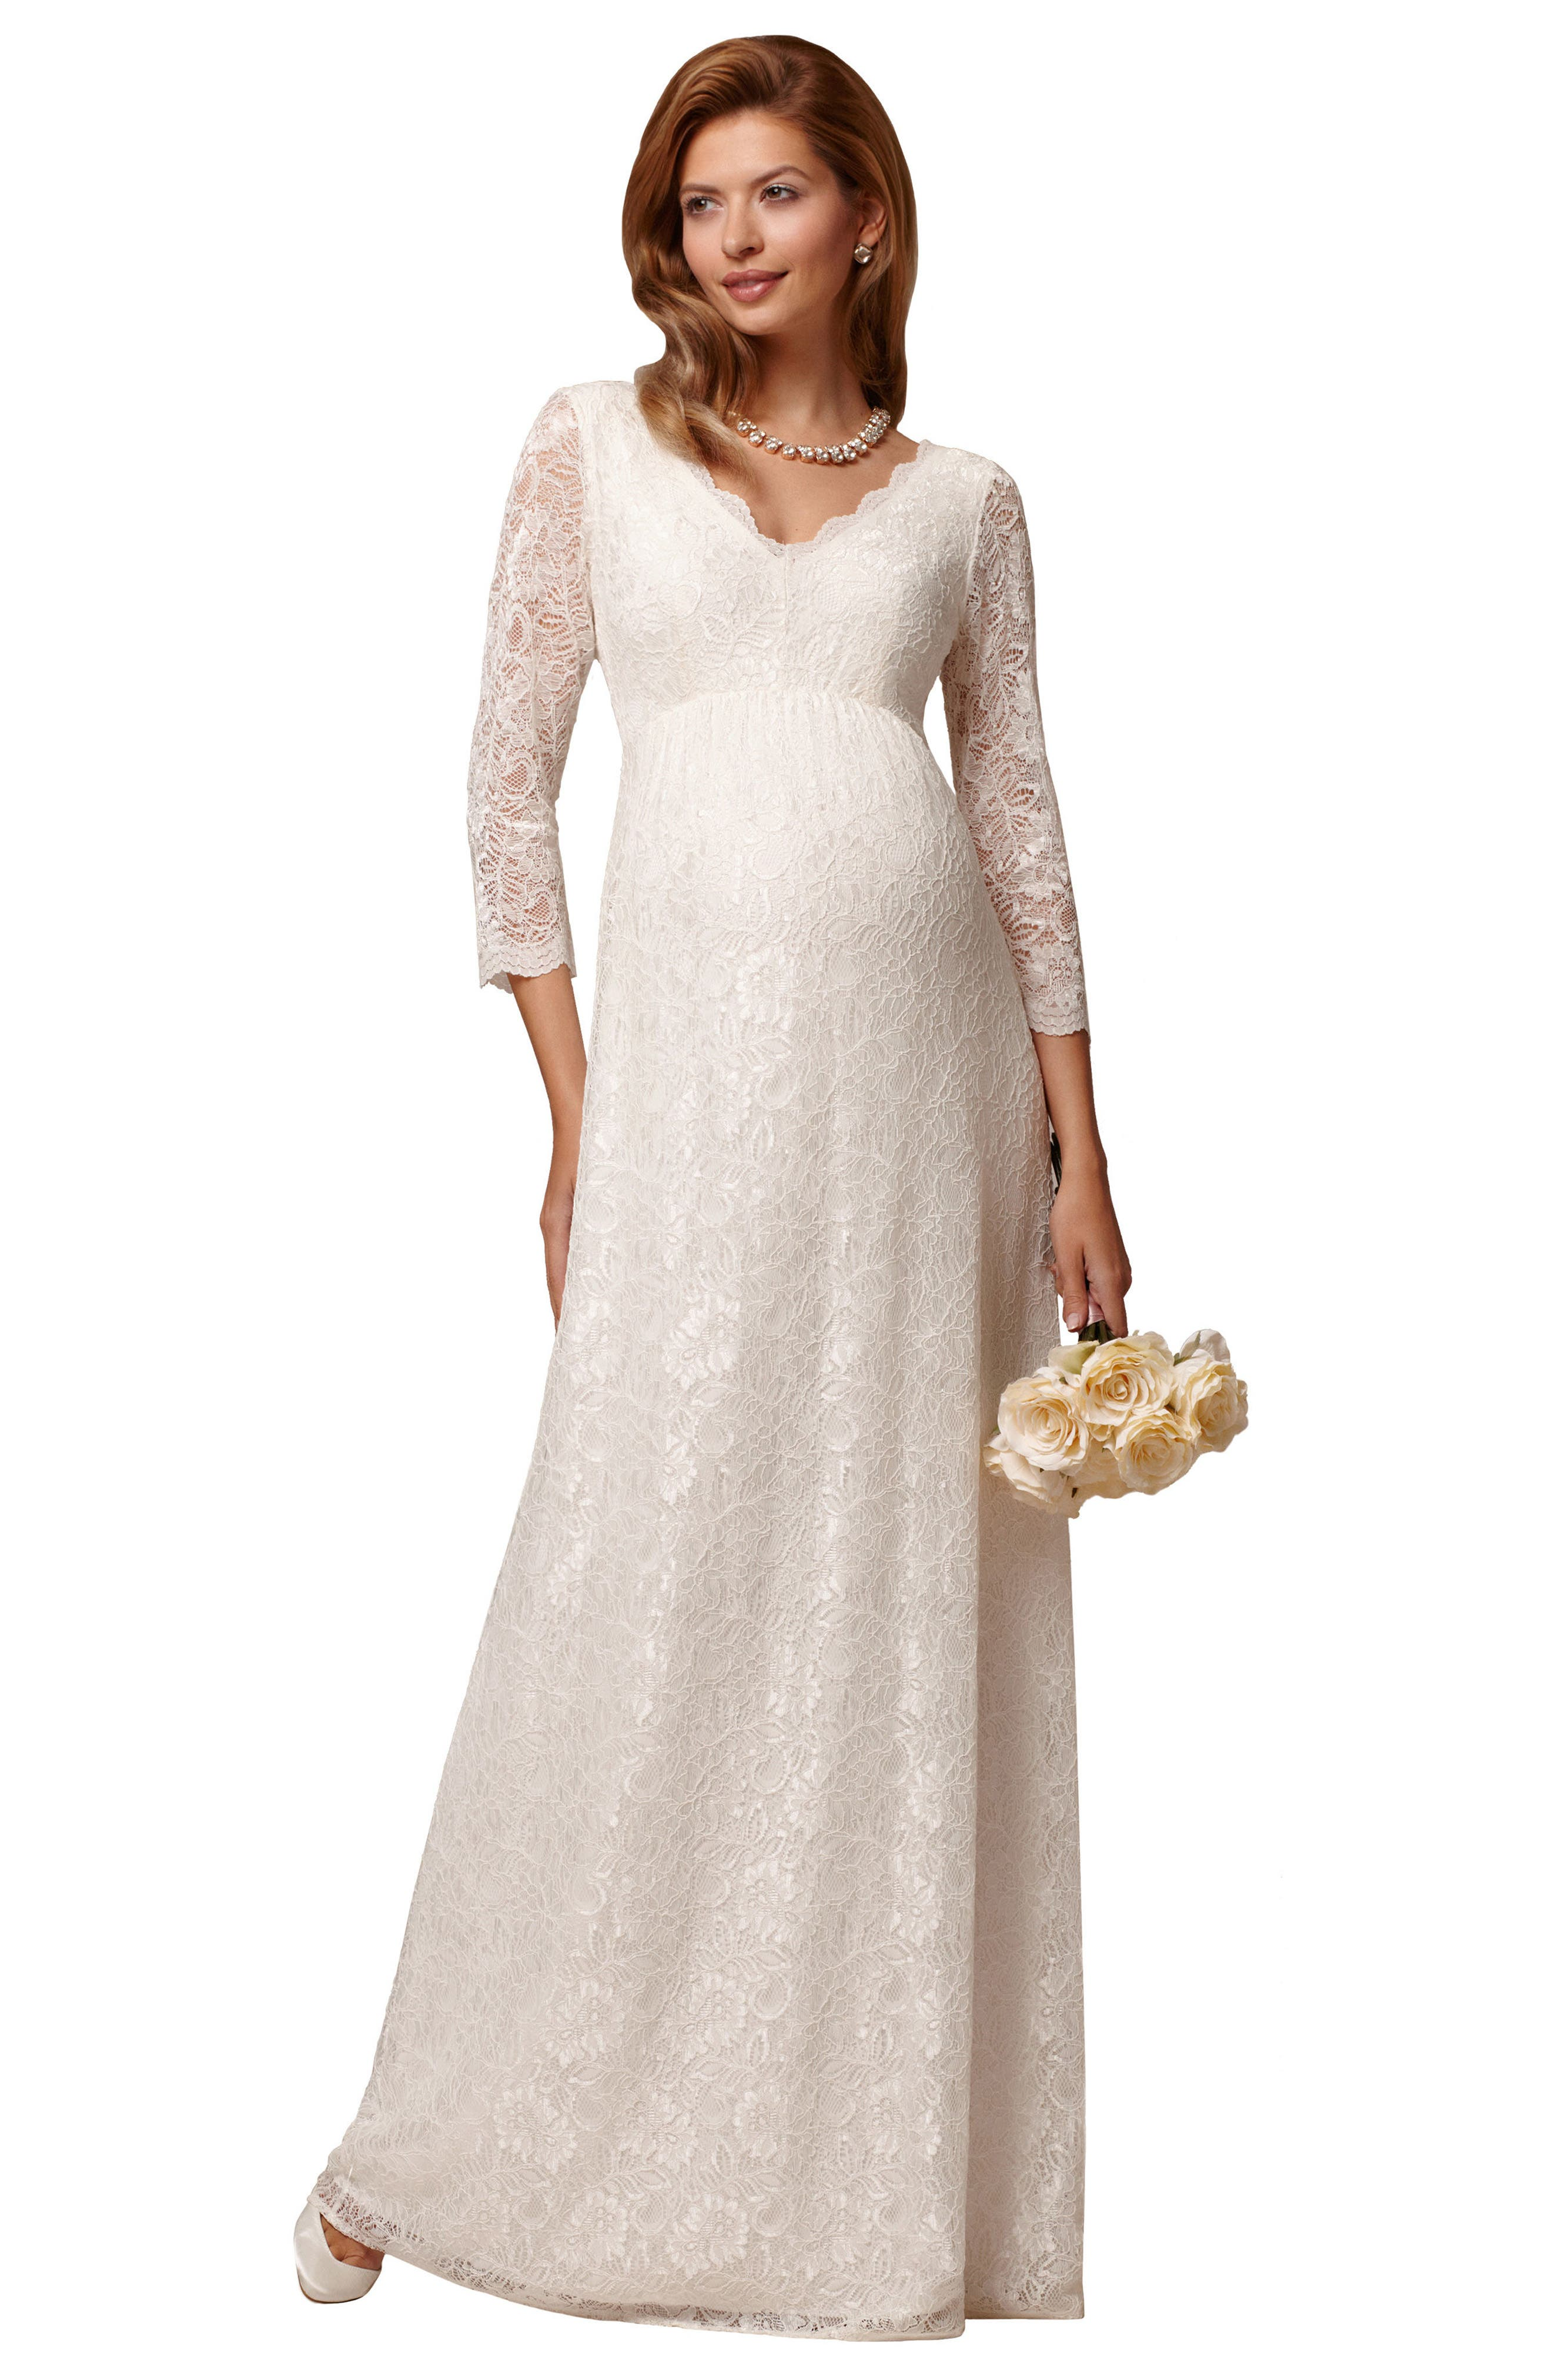 TIFFANY ROSE,                             Chloe Lace Maternity Gown,                             Alternate thumbnail 3, color,                             IVORY